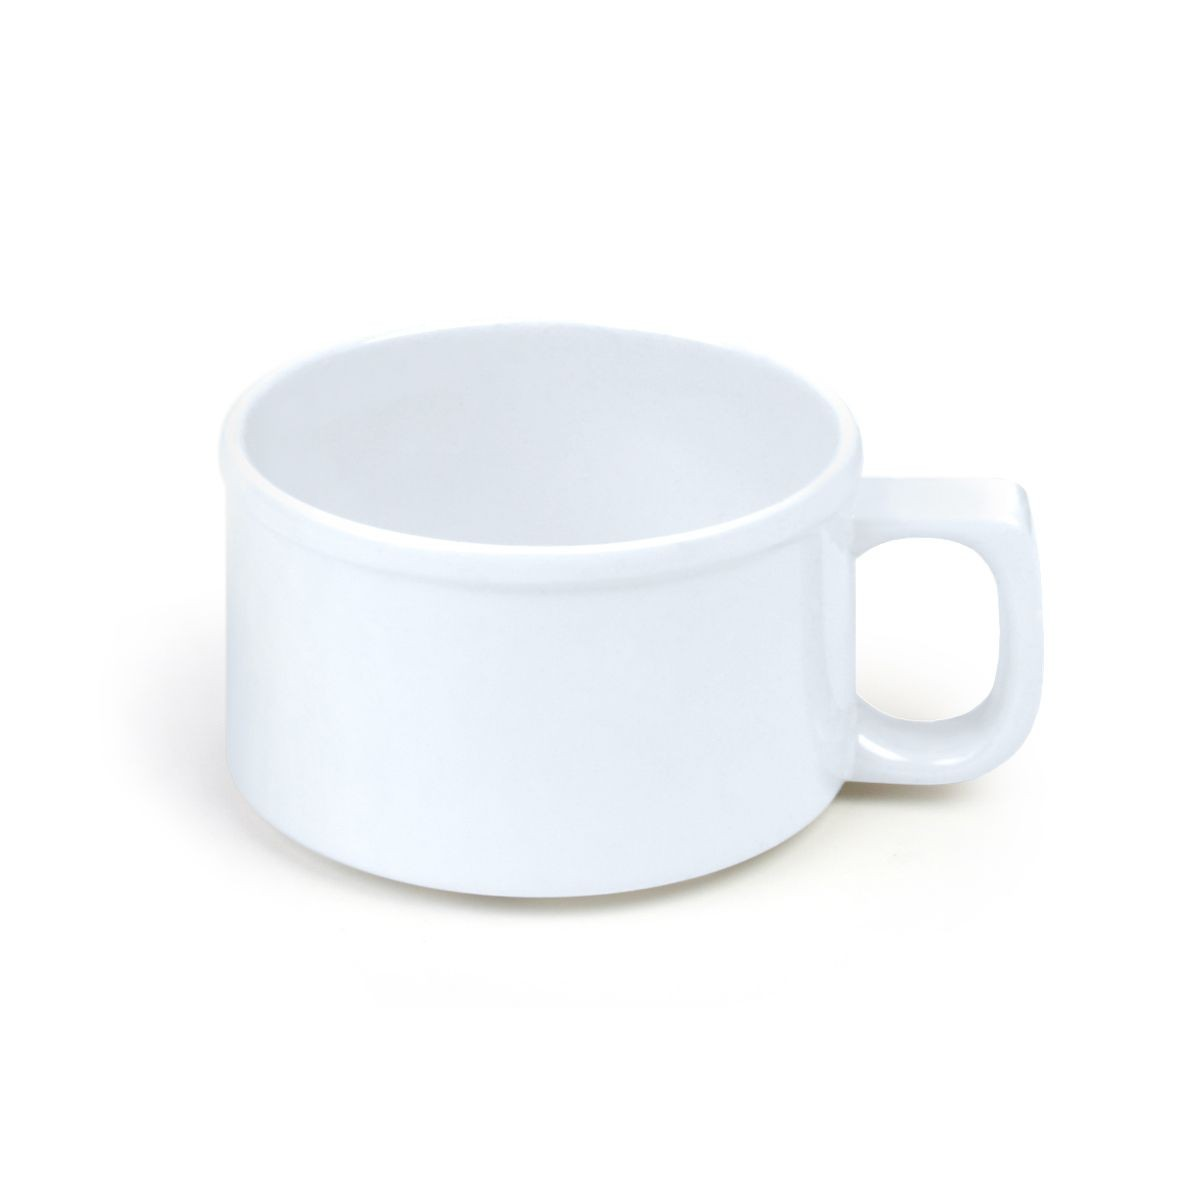 Thunder Group CR9016W White Melamine Soup Mug 10 oz. - 1 doz